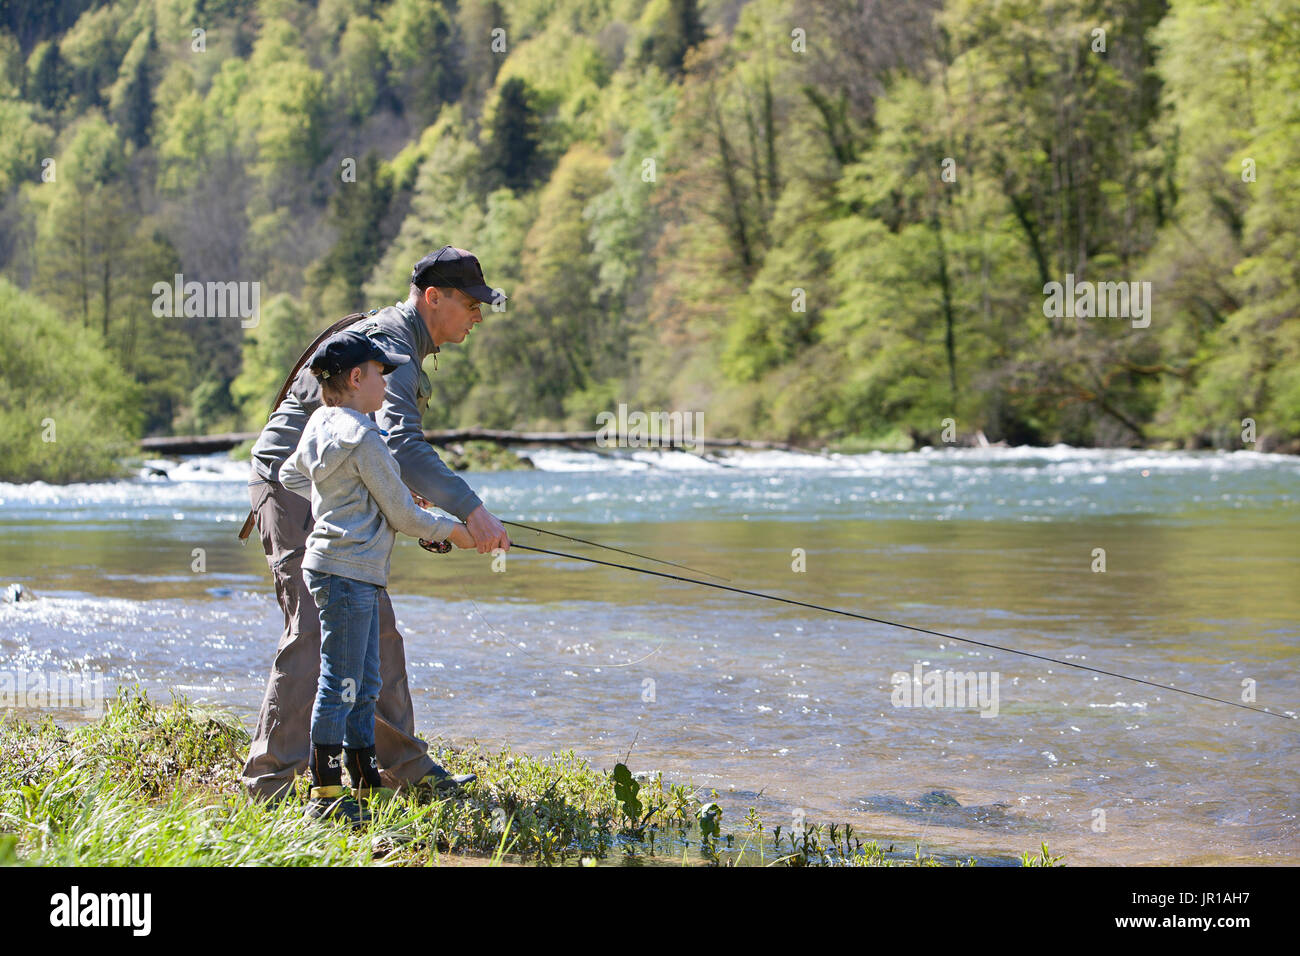 Fly fisherman and child learning, River Doubs, Goumois, Franche-Comte, France - Stock Image